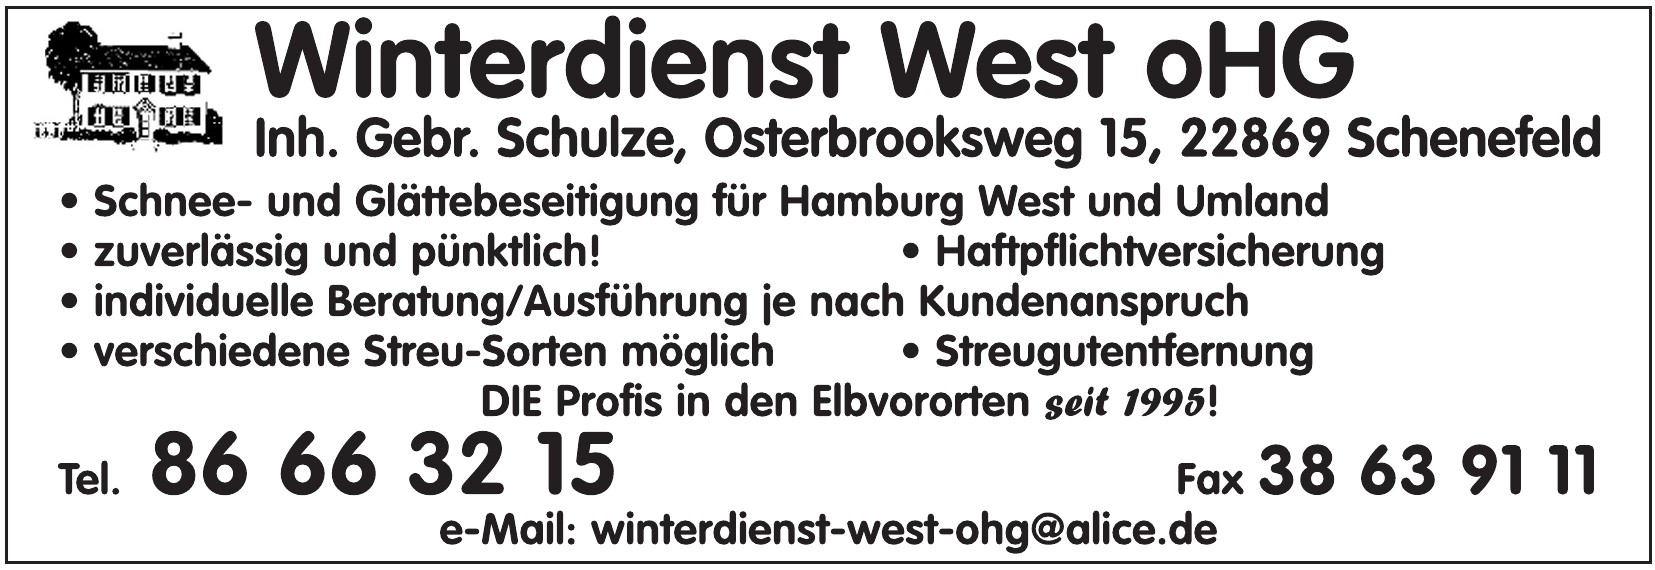 Winterdienst West oHG